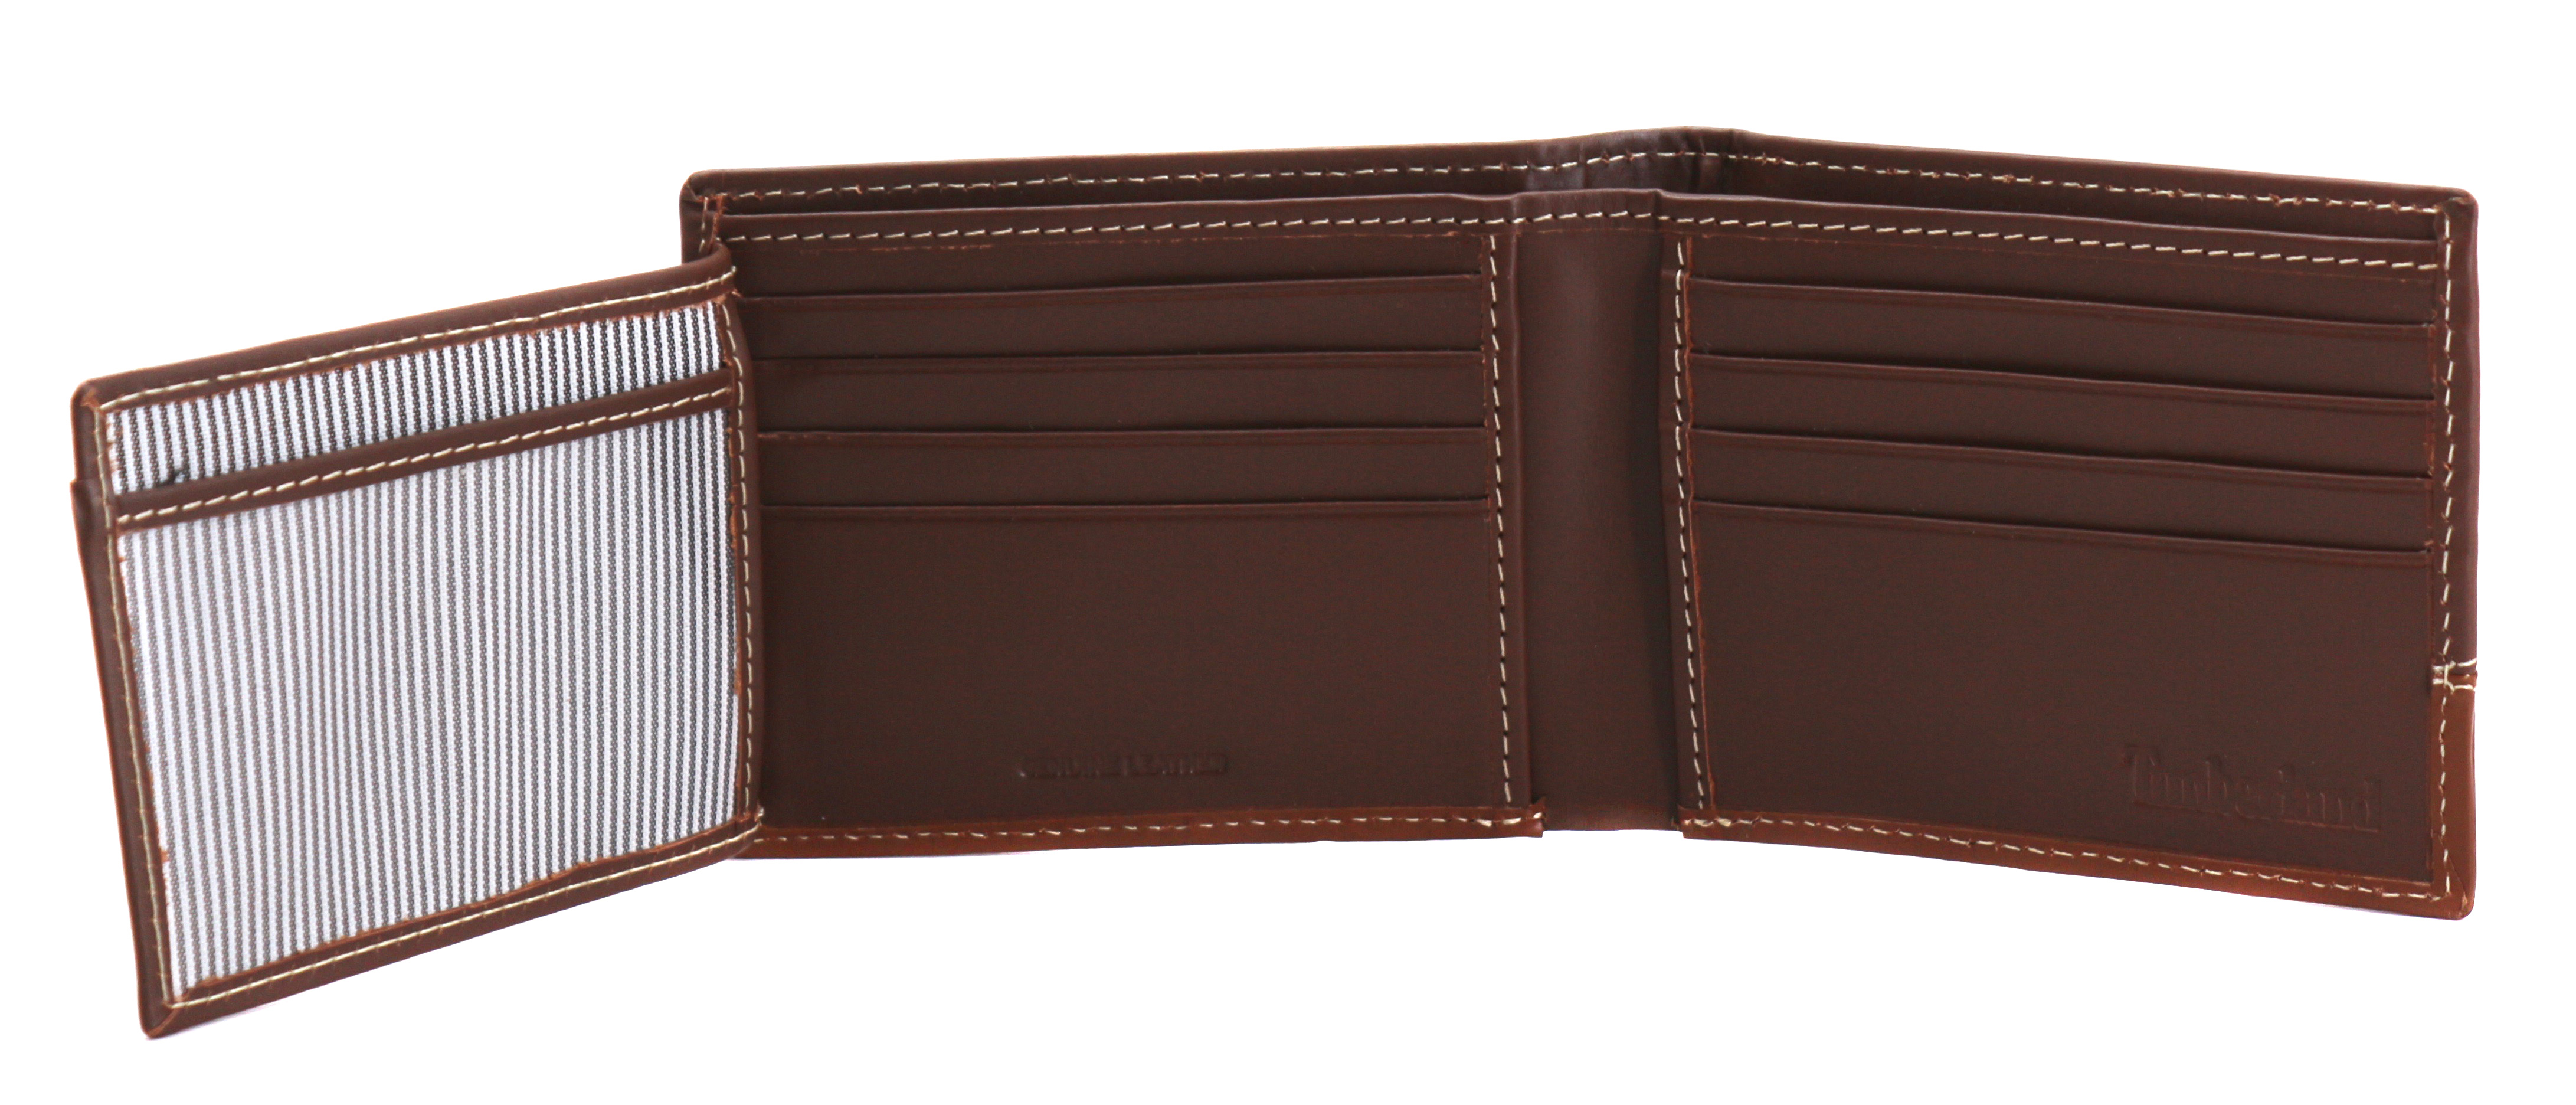 Timberland-Men-039-s-Genuine-Two-Tone-Leather-Credit-Card-Billfold-Commuter-Wallet thumbnail 41